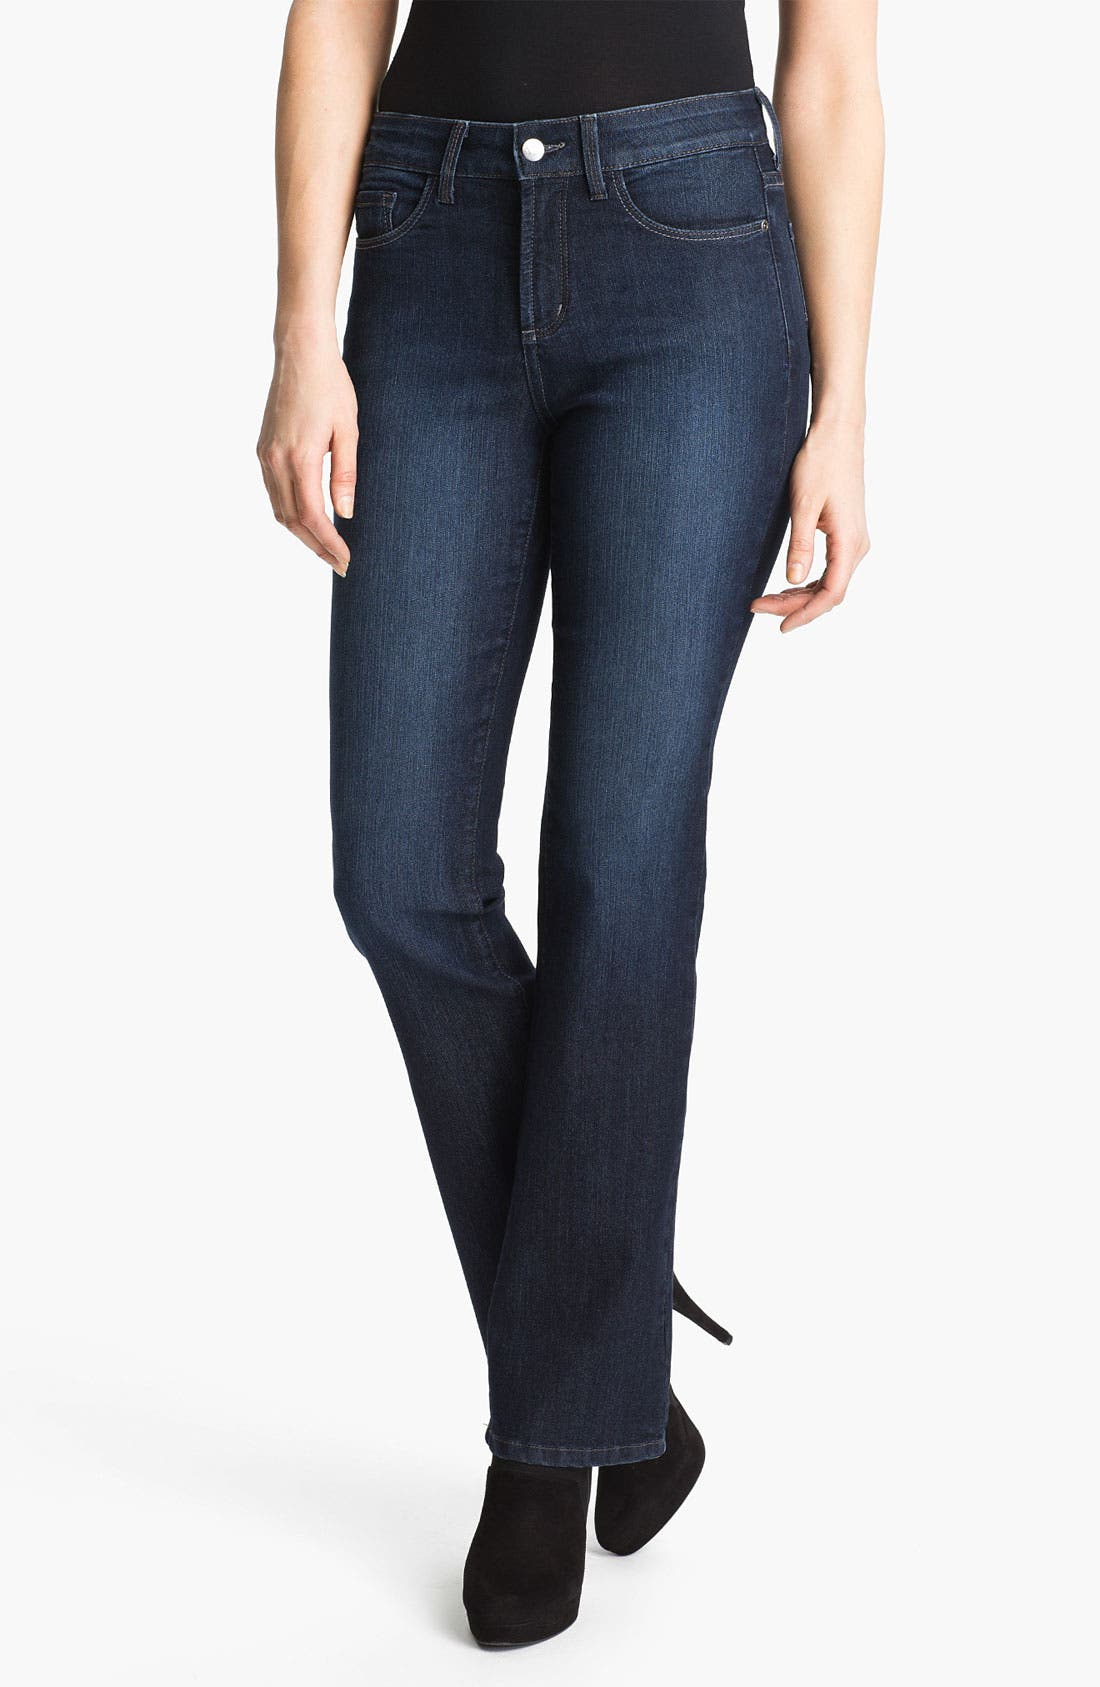 Alternate Image 1 Selected - NYDJ 'Barbara' Embellished Bootcut Jeans